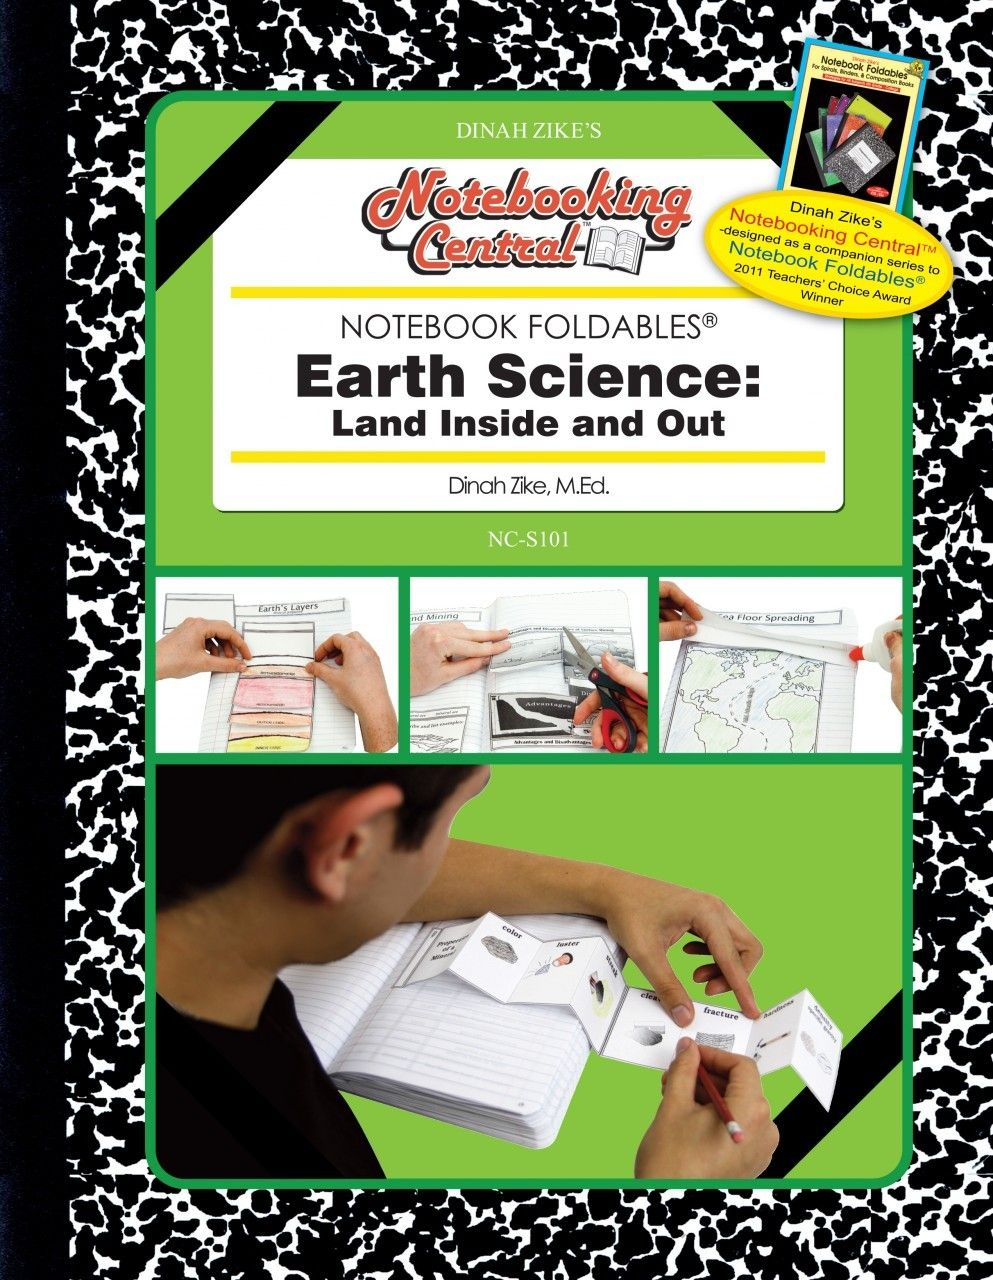 Science Notebook Foldables Dinah Zike S Notebooking Central Notebook Foldables Earth Scien Earth Science Interactive Science Notebook Earth And Space Science